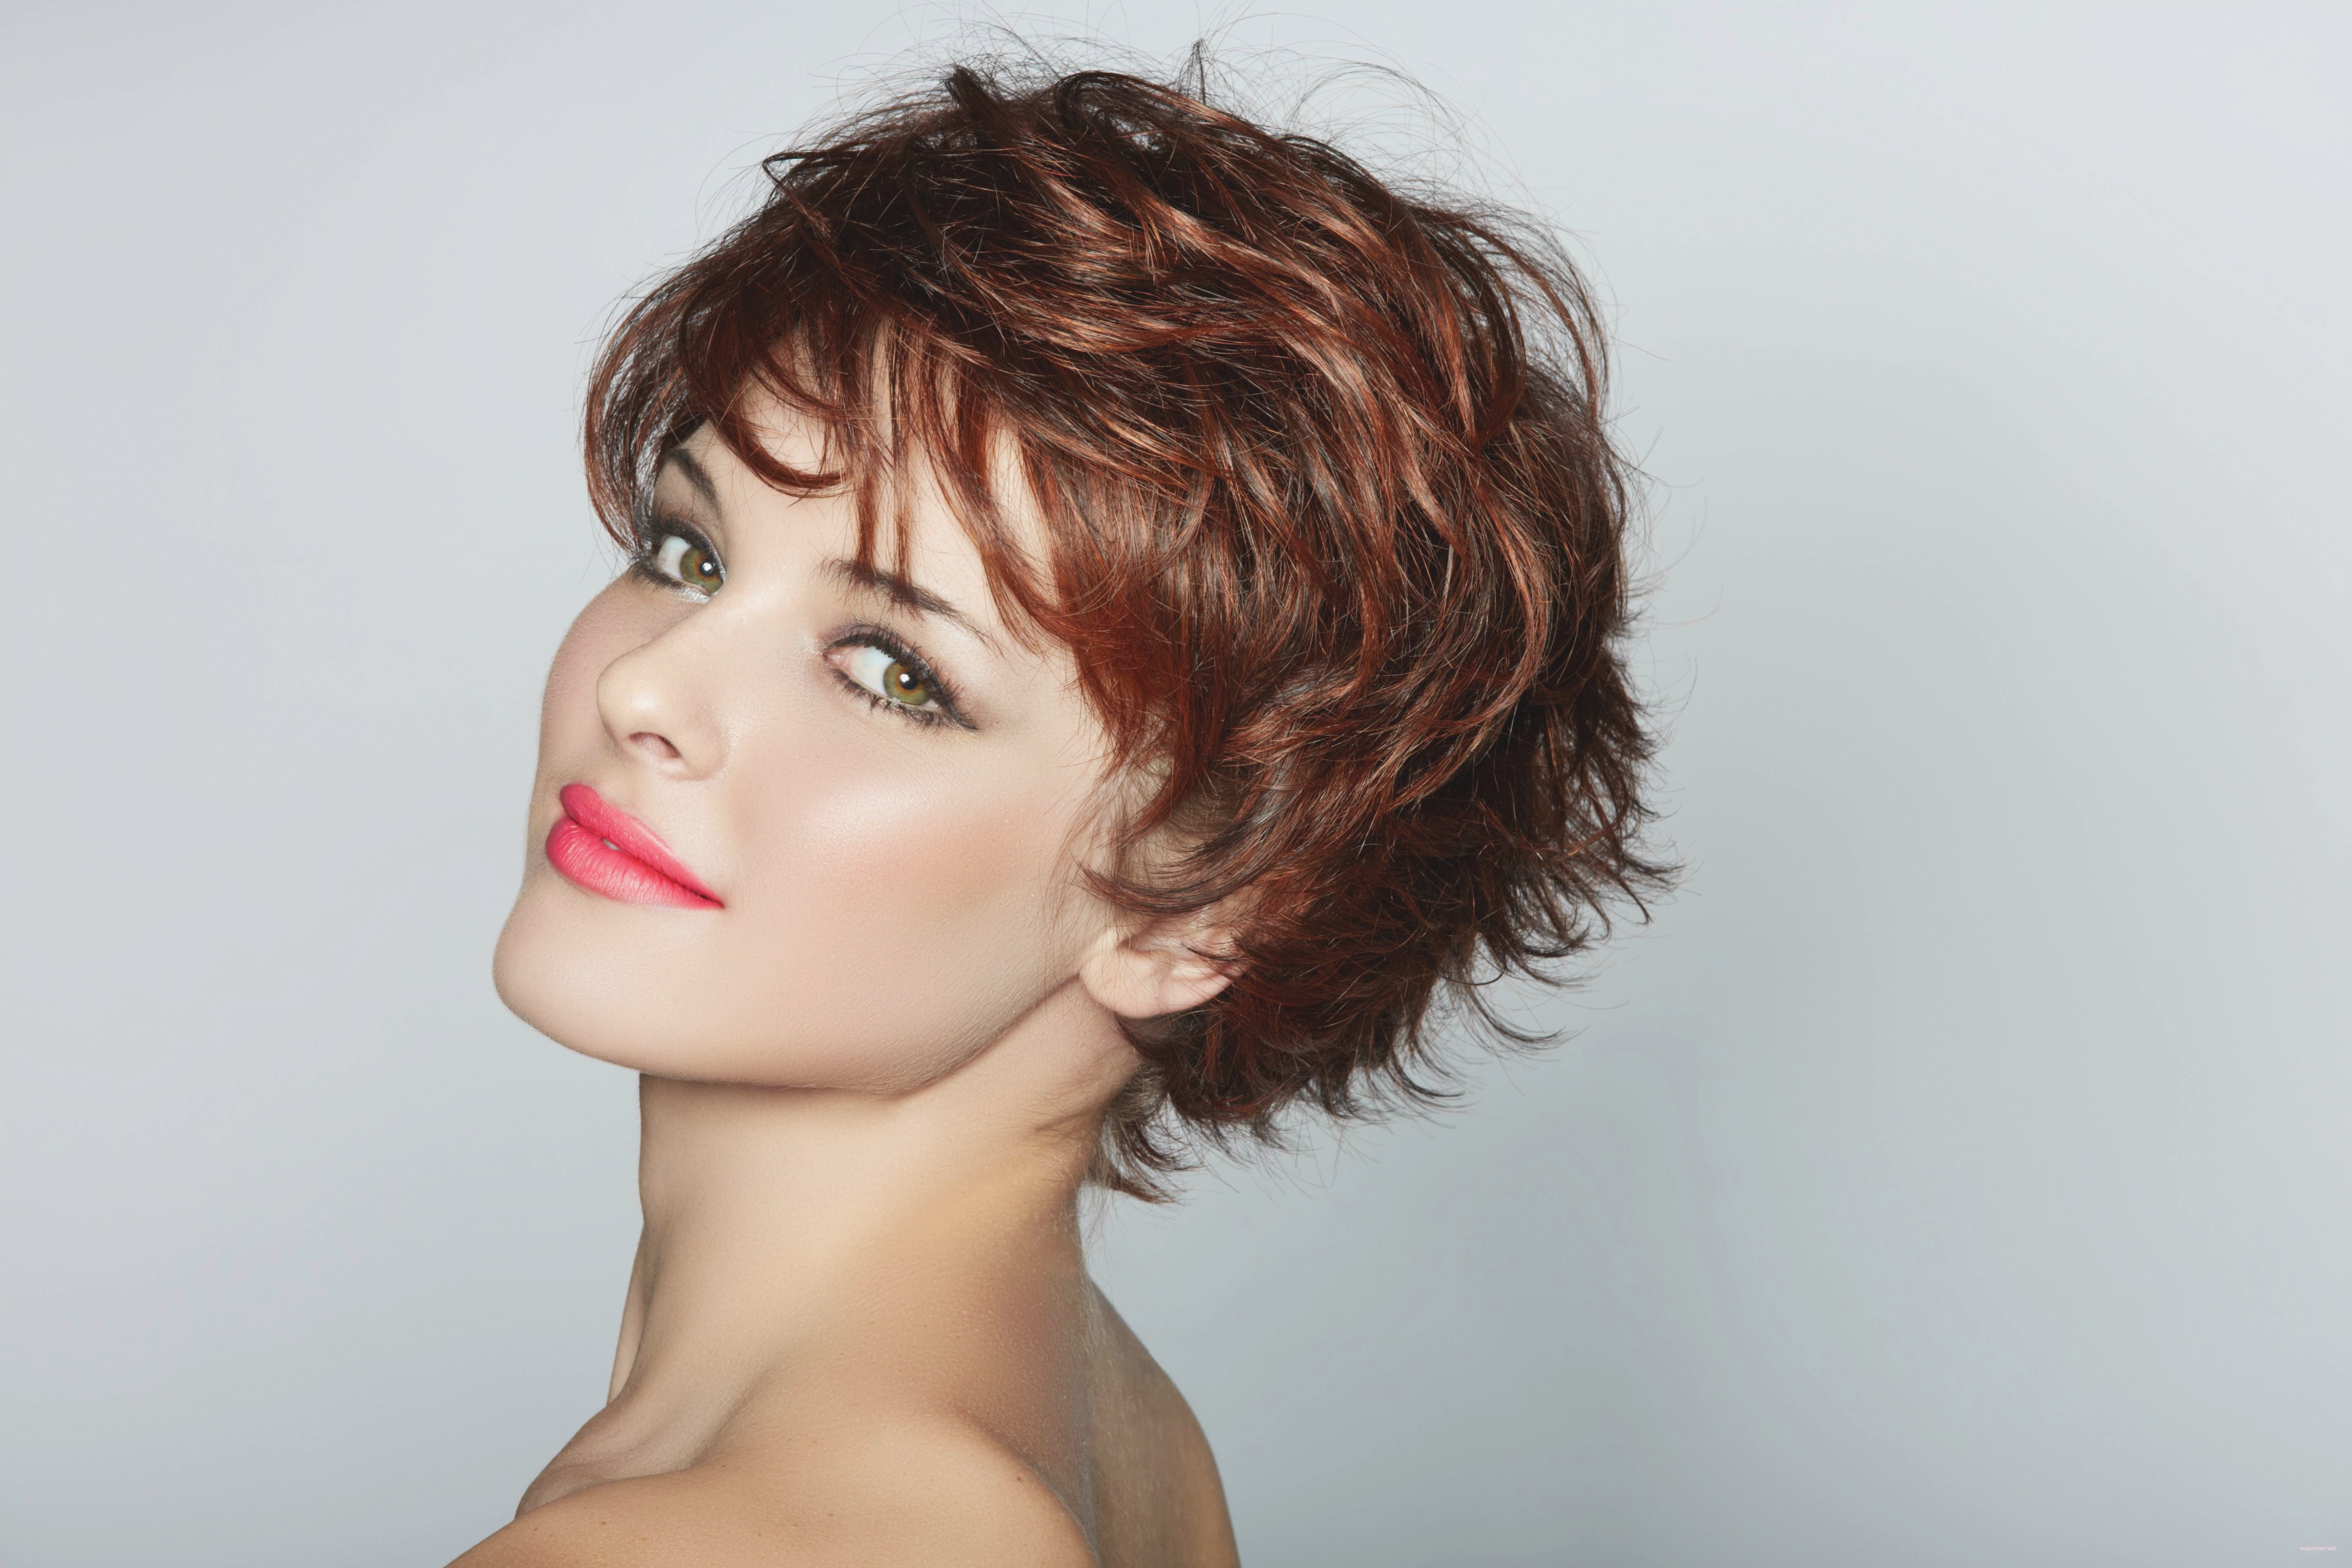 Pixie Haircuts For Wavy Hair 2015 Luxury Short Hairstyles For Thin Regarding Short Hairstyles For Thin Curly Hair (View 5 of 25)